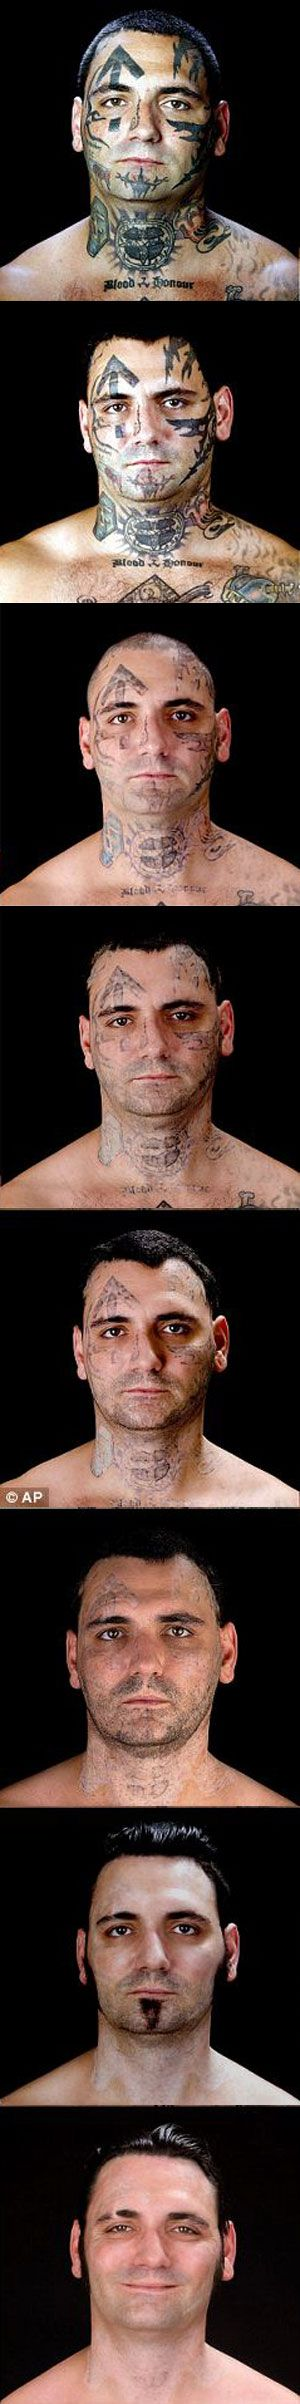 Removing tattoos with laser surgery...